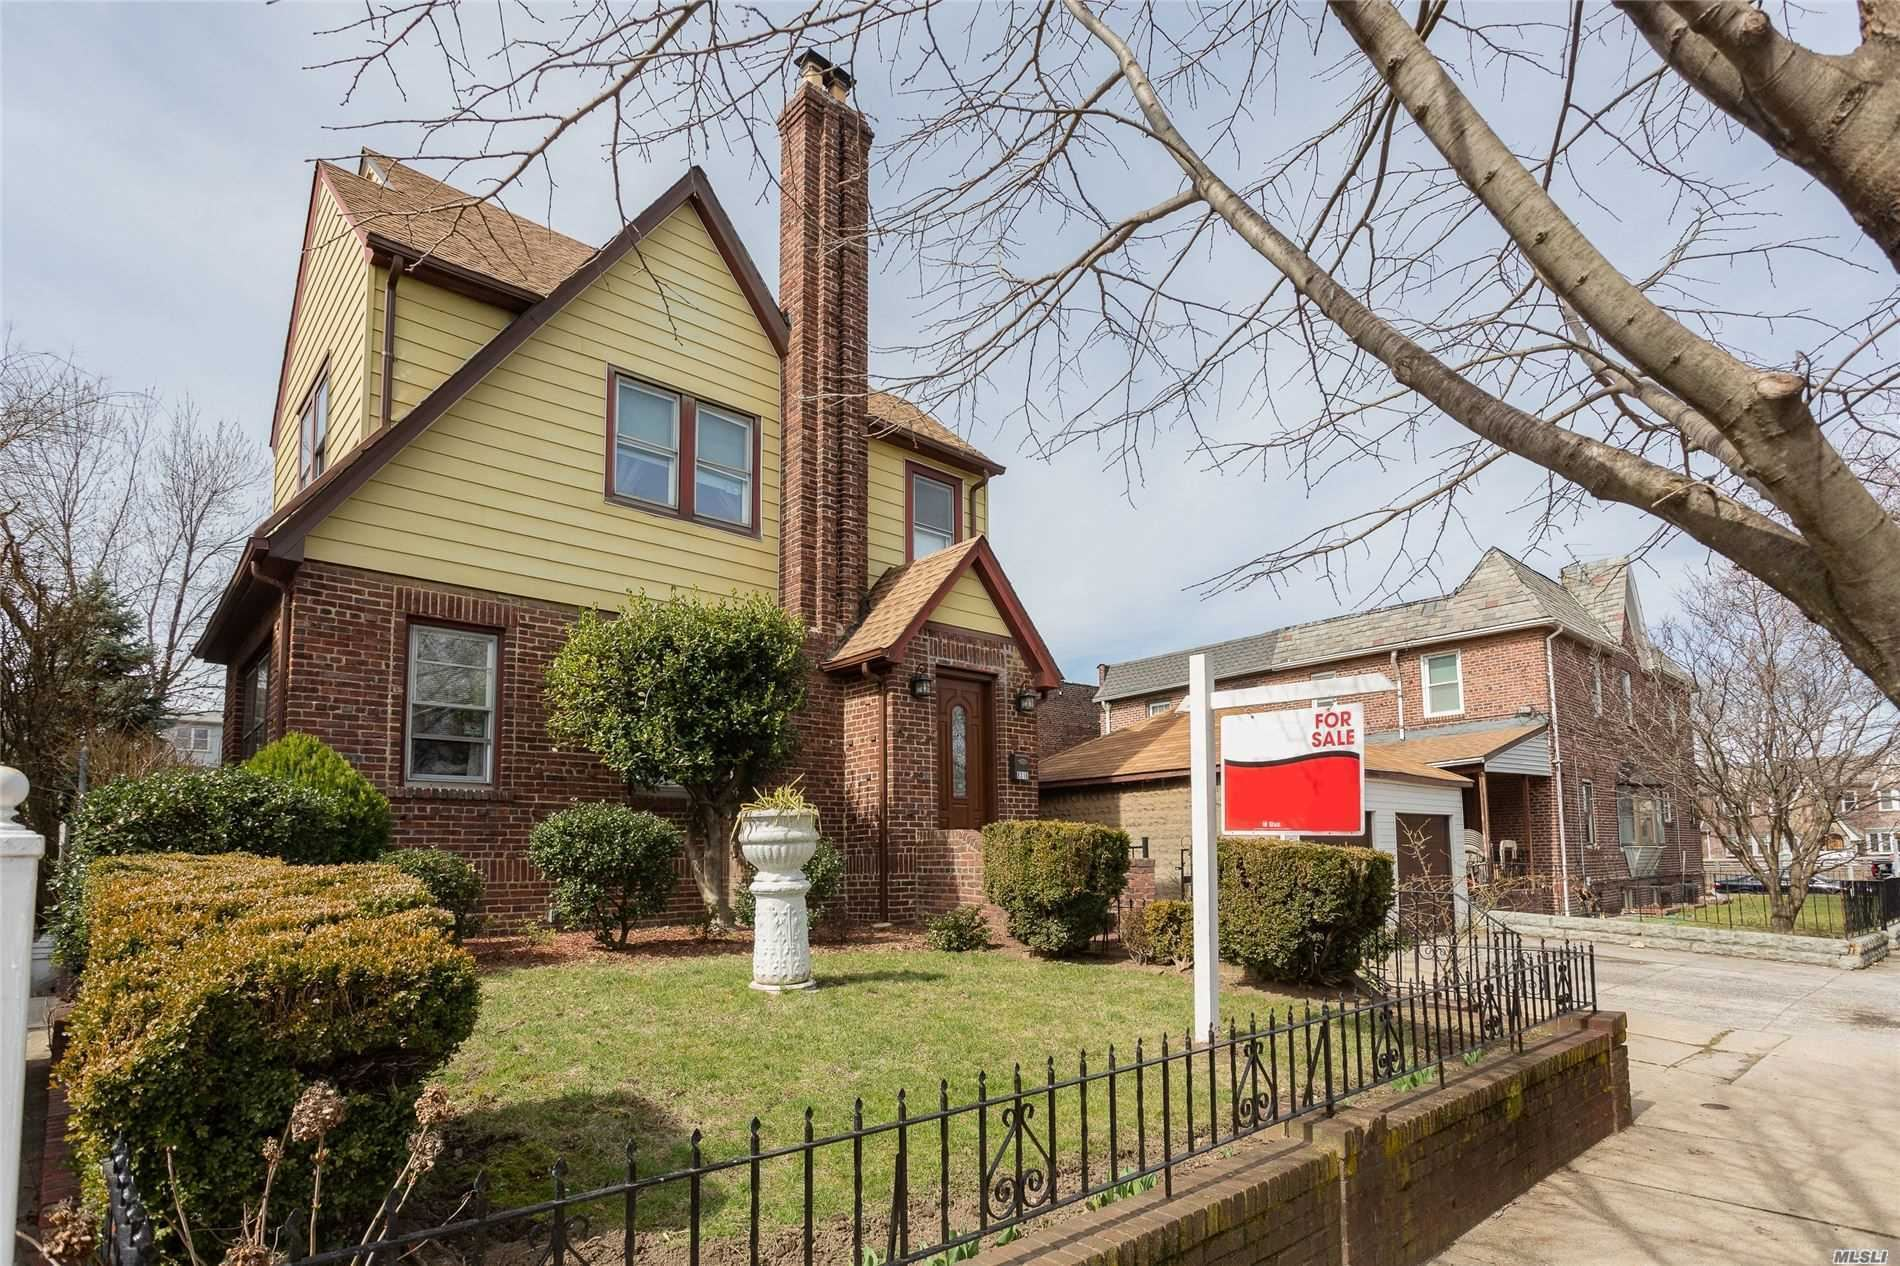 83-16 164th Place, Jamaica Hills, NY 11432 - MLS#: 3207320